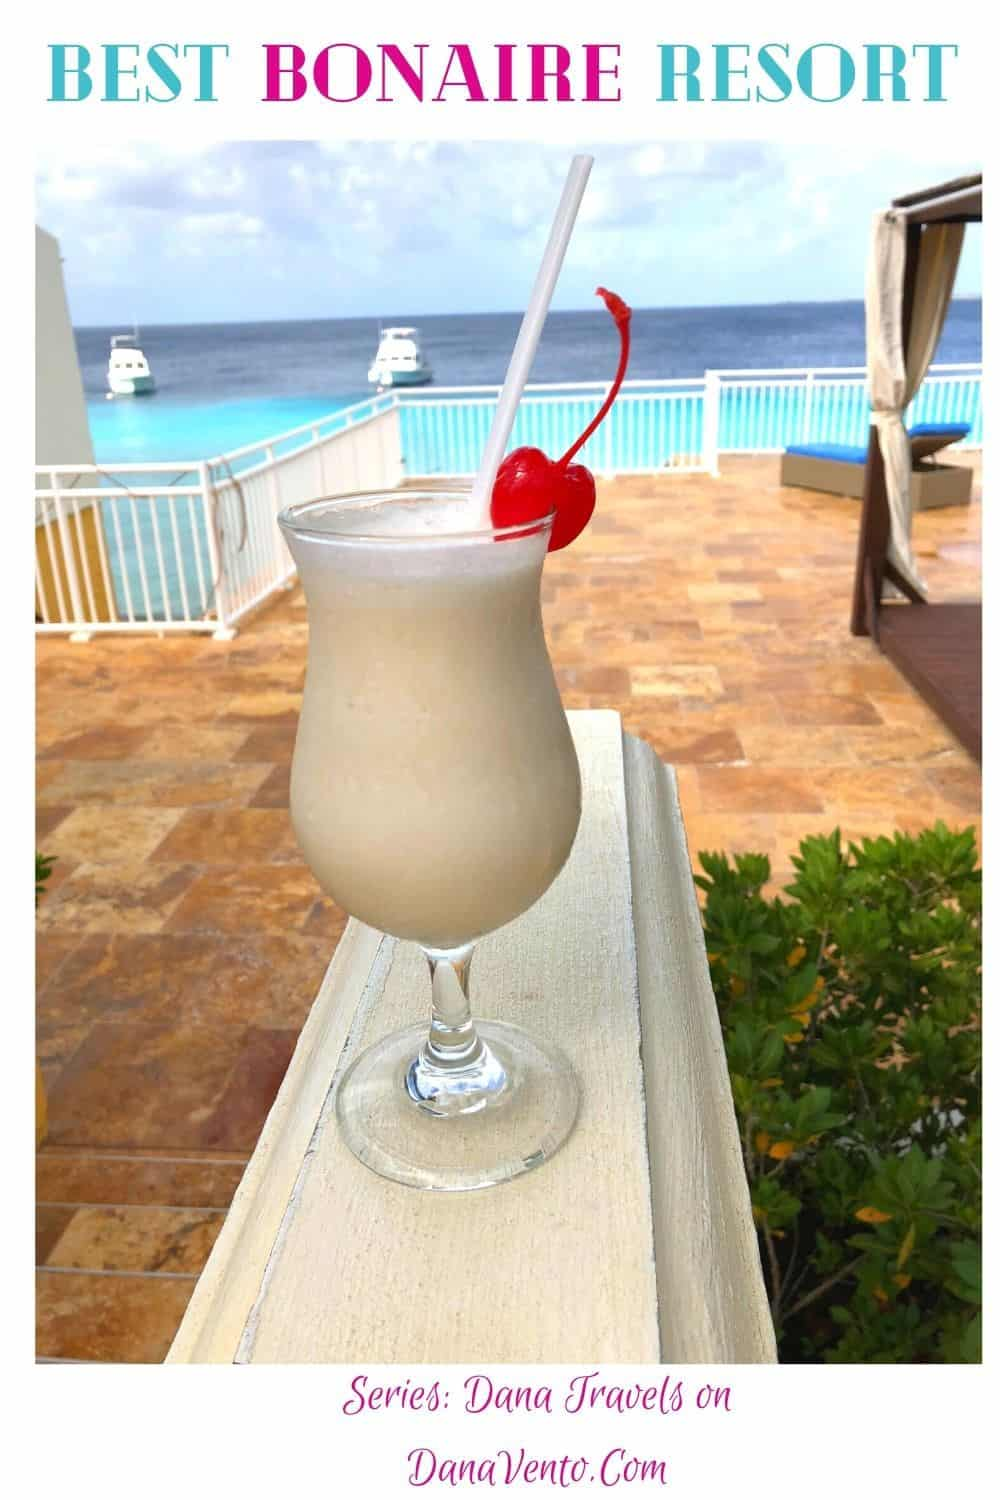 Best Bonaire Resort Pina Coloda- What is a Day in Bonaire without a drink?